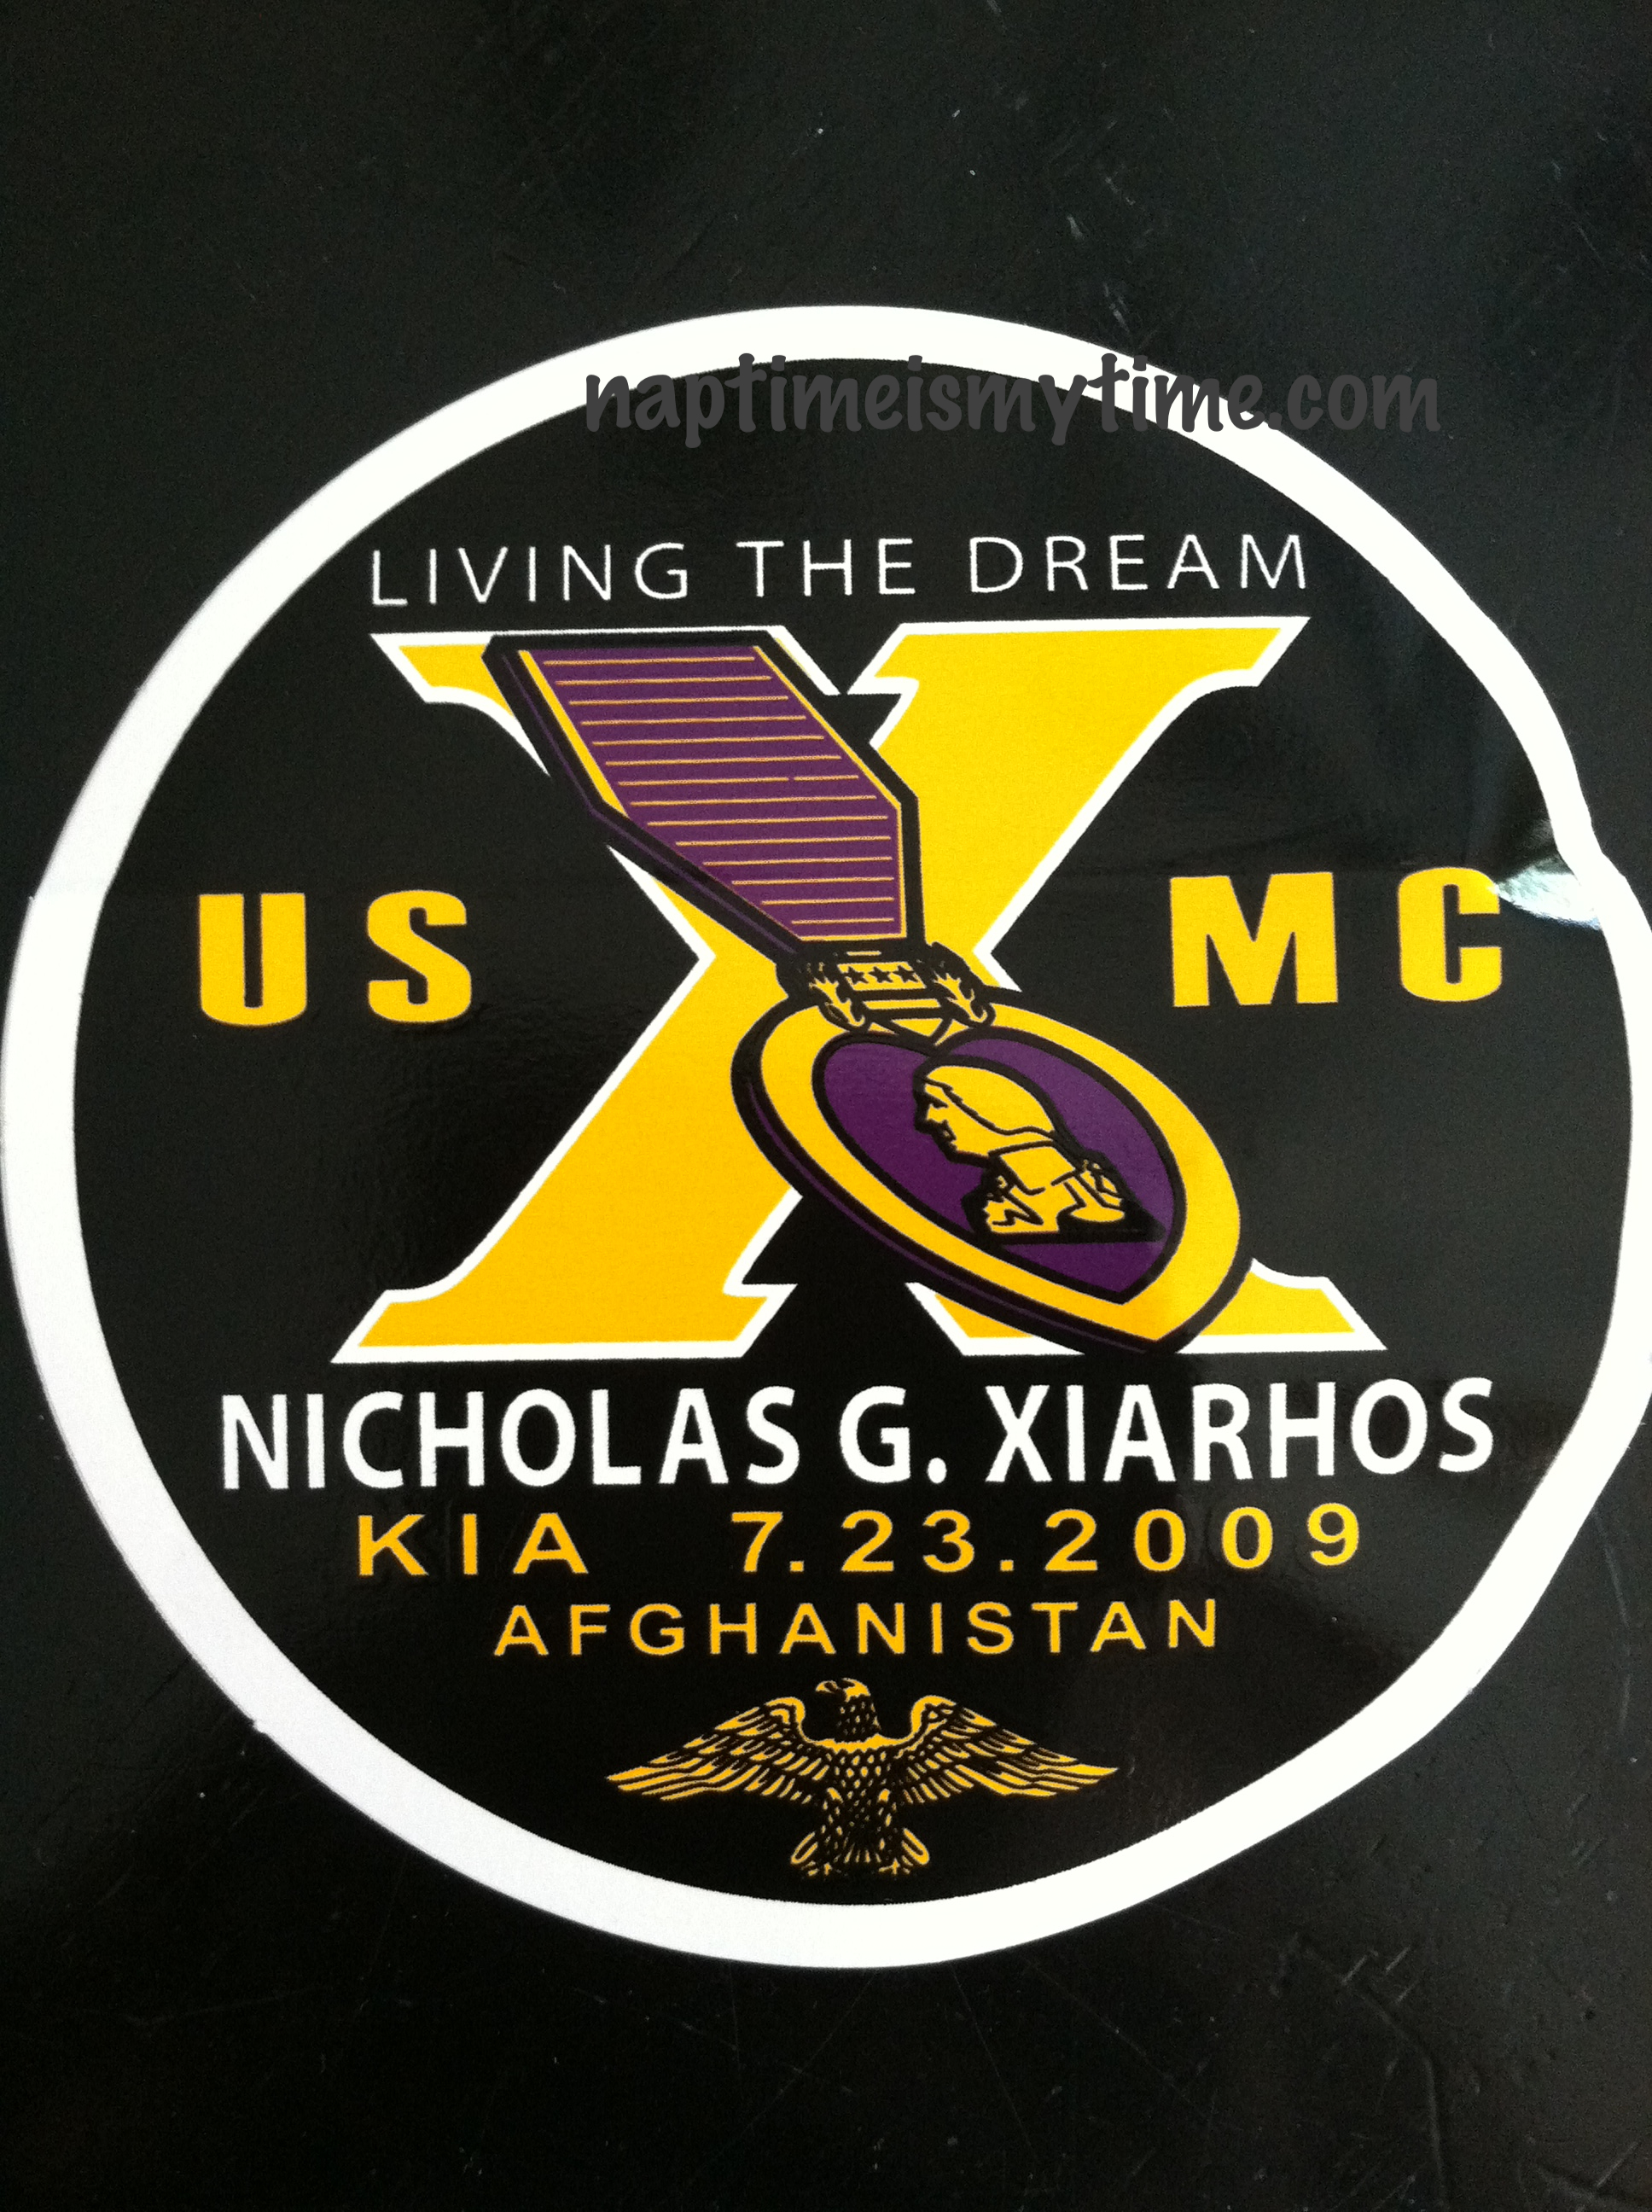 Remembering Nicholas Xiarhos 48 months later